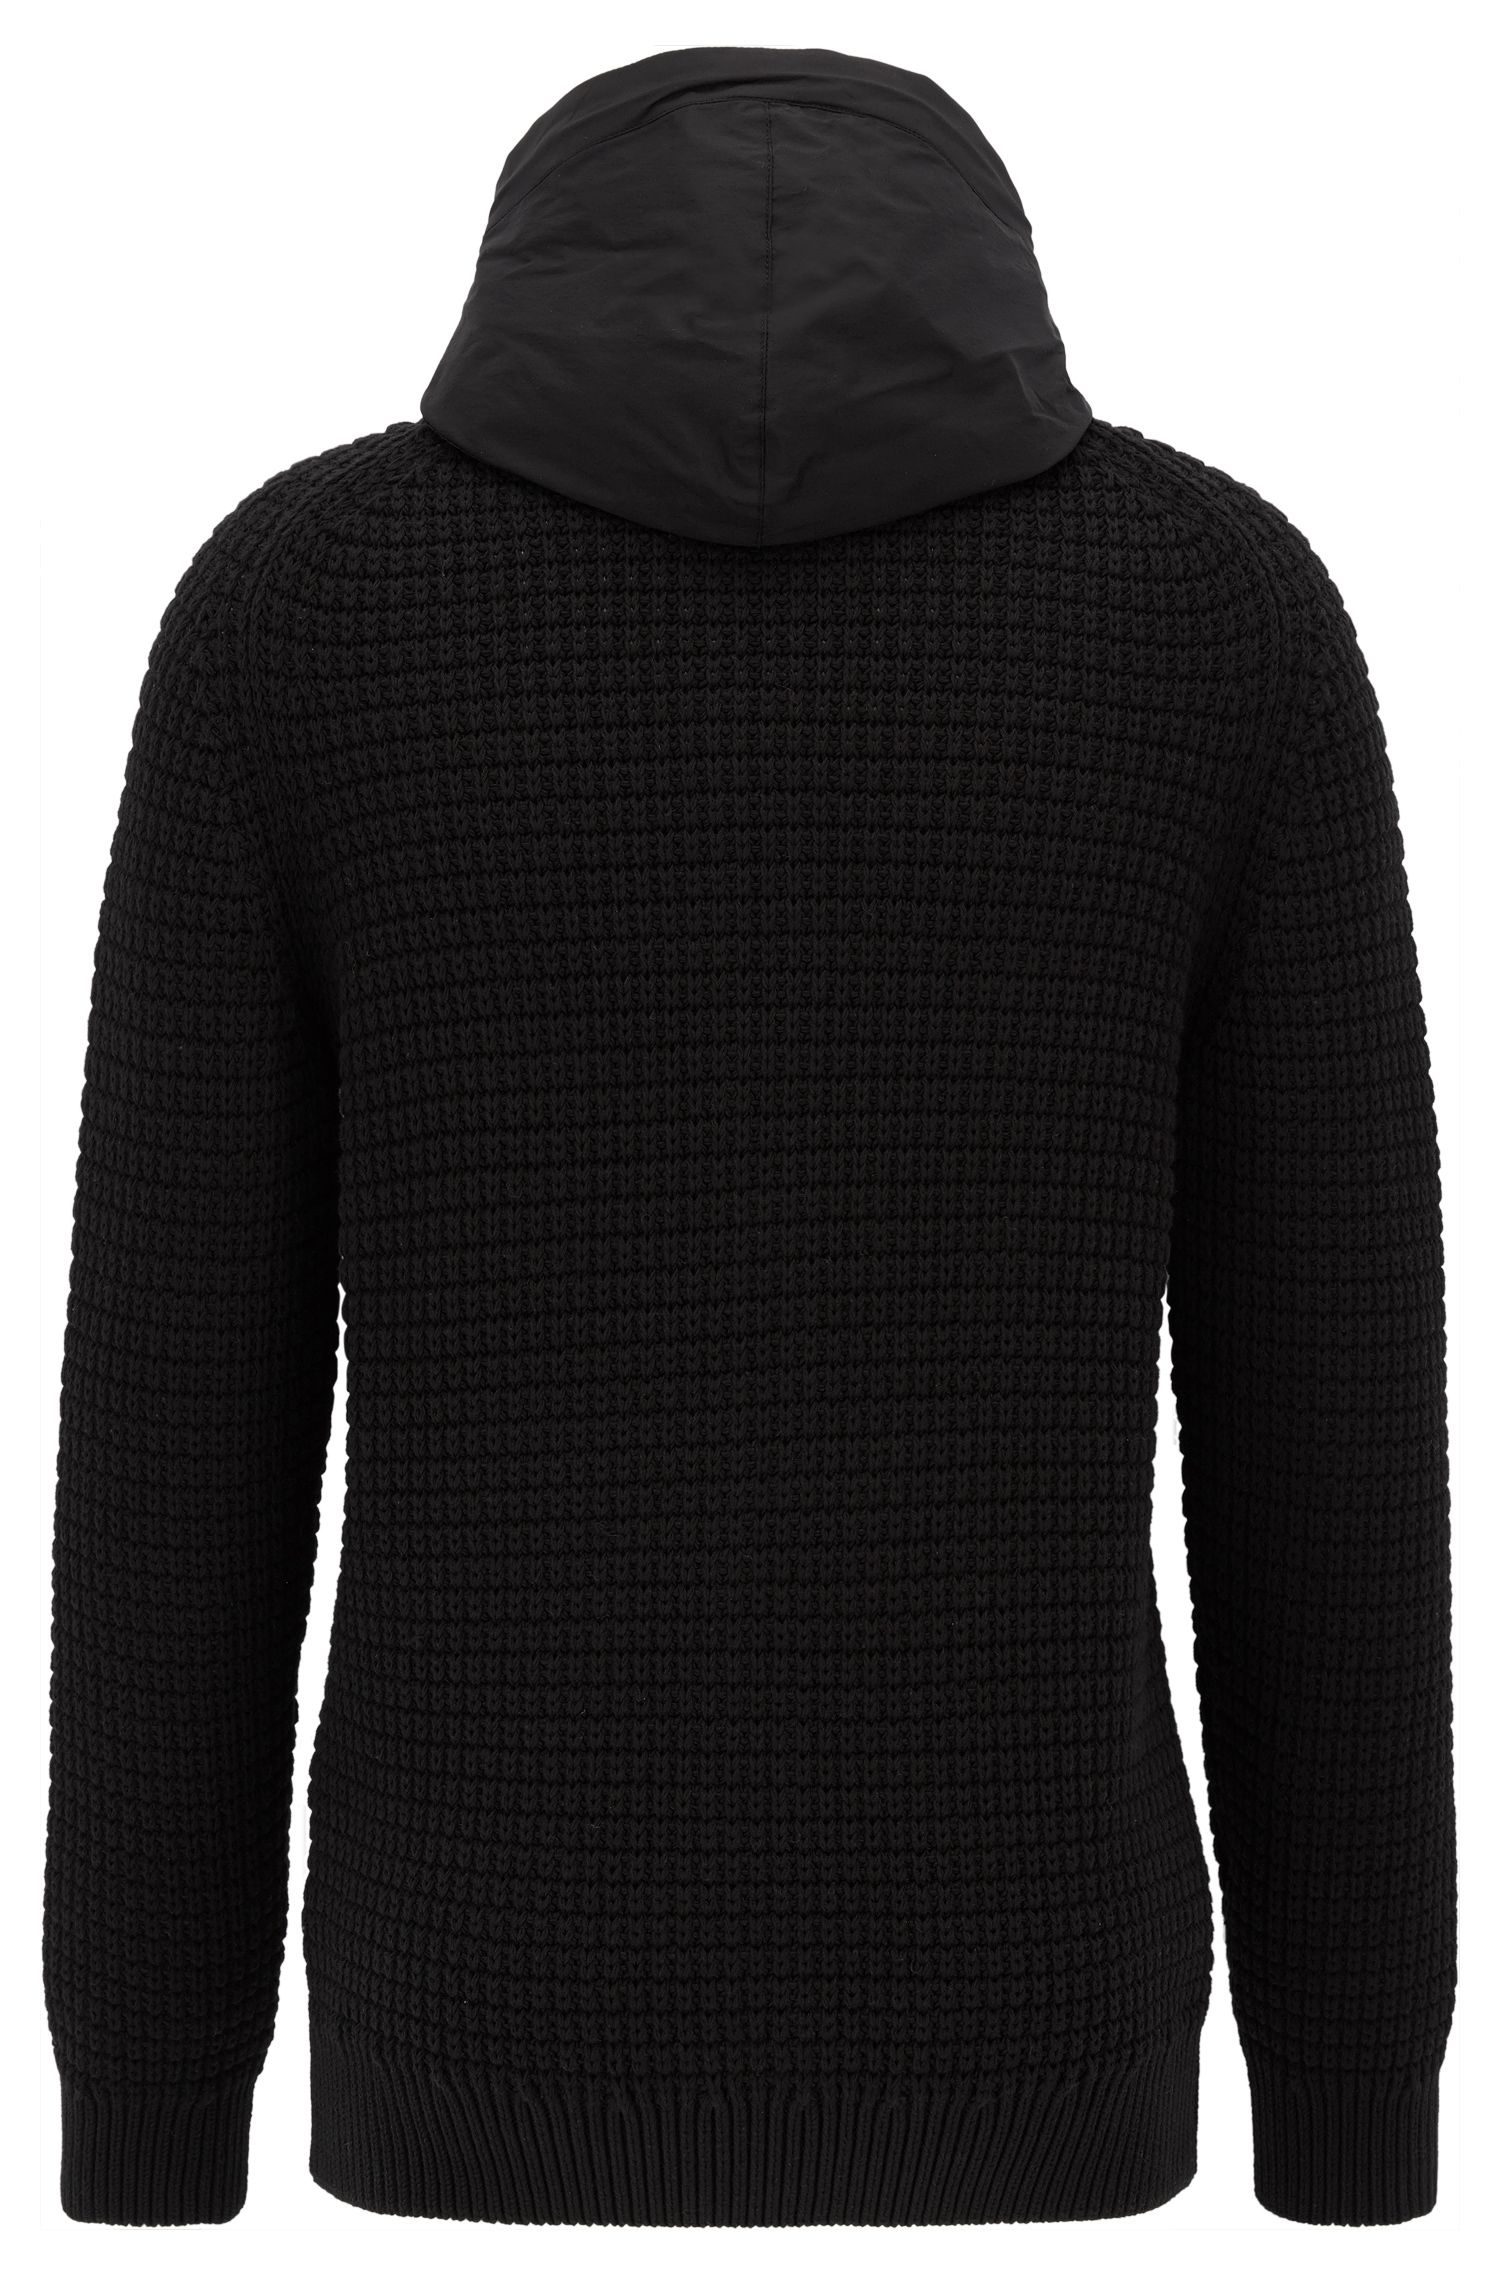 Zip-through knitted jacket with contrast hood